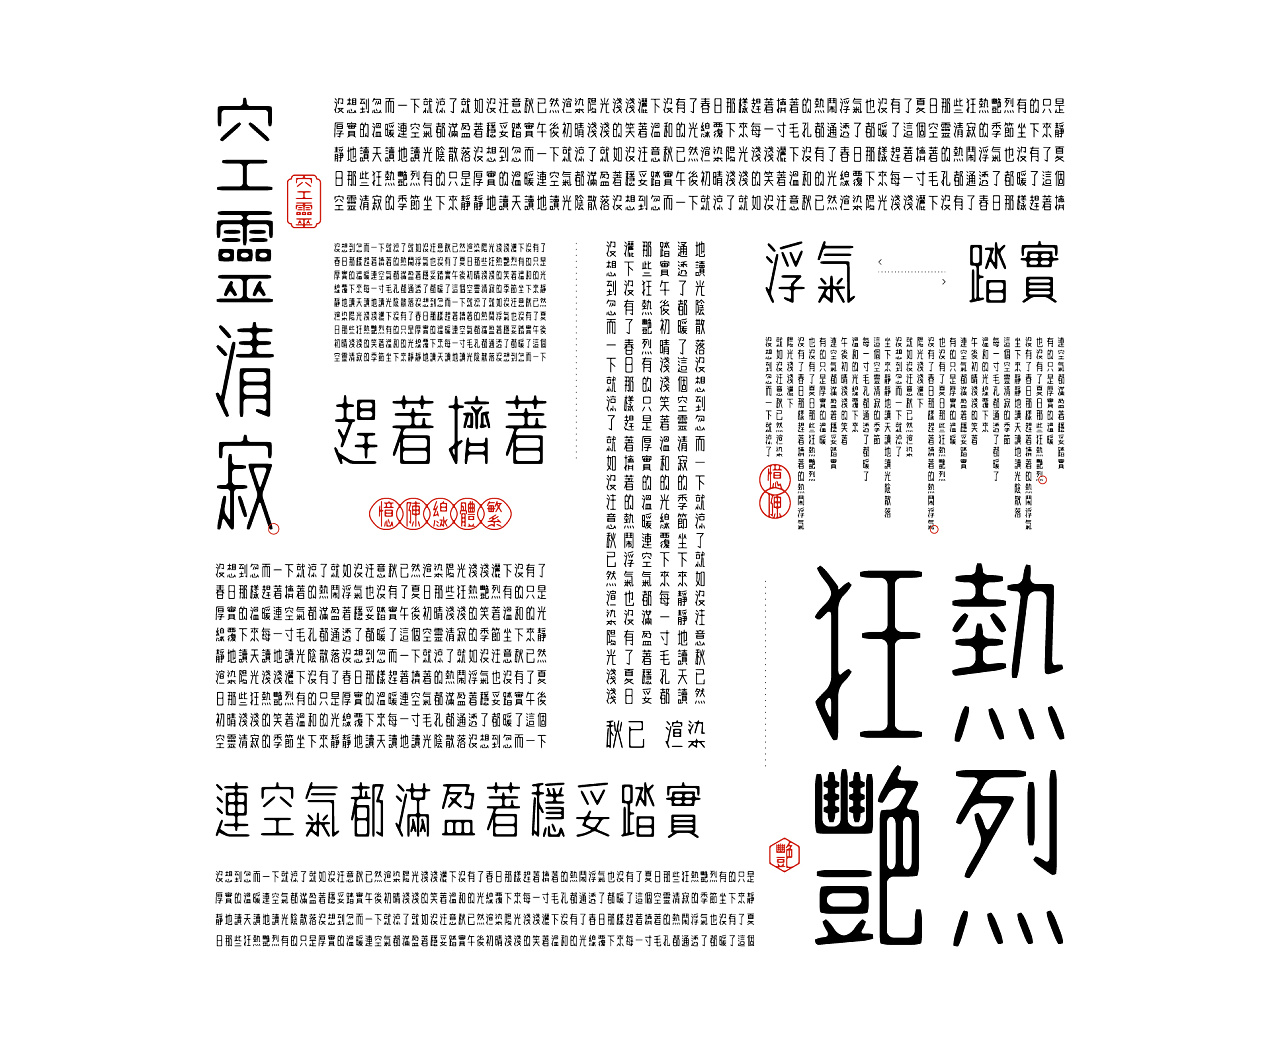 9P Chinese Font : a literary retro exploration tour